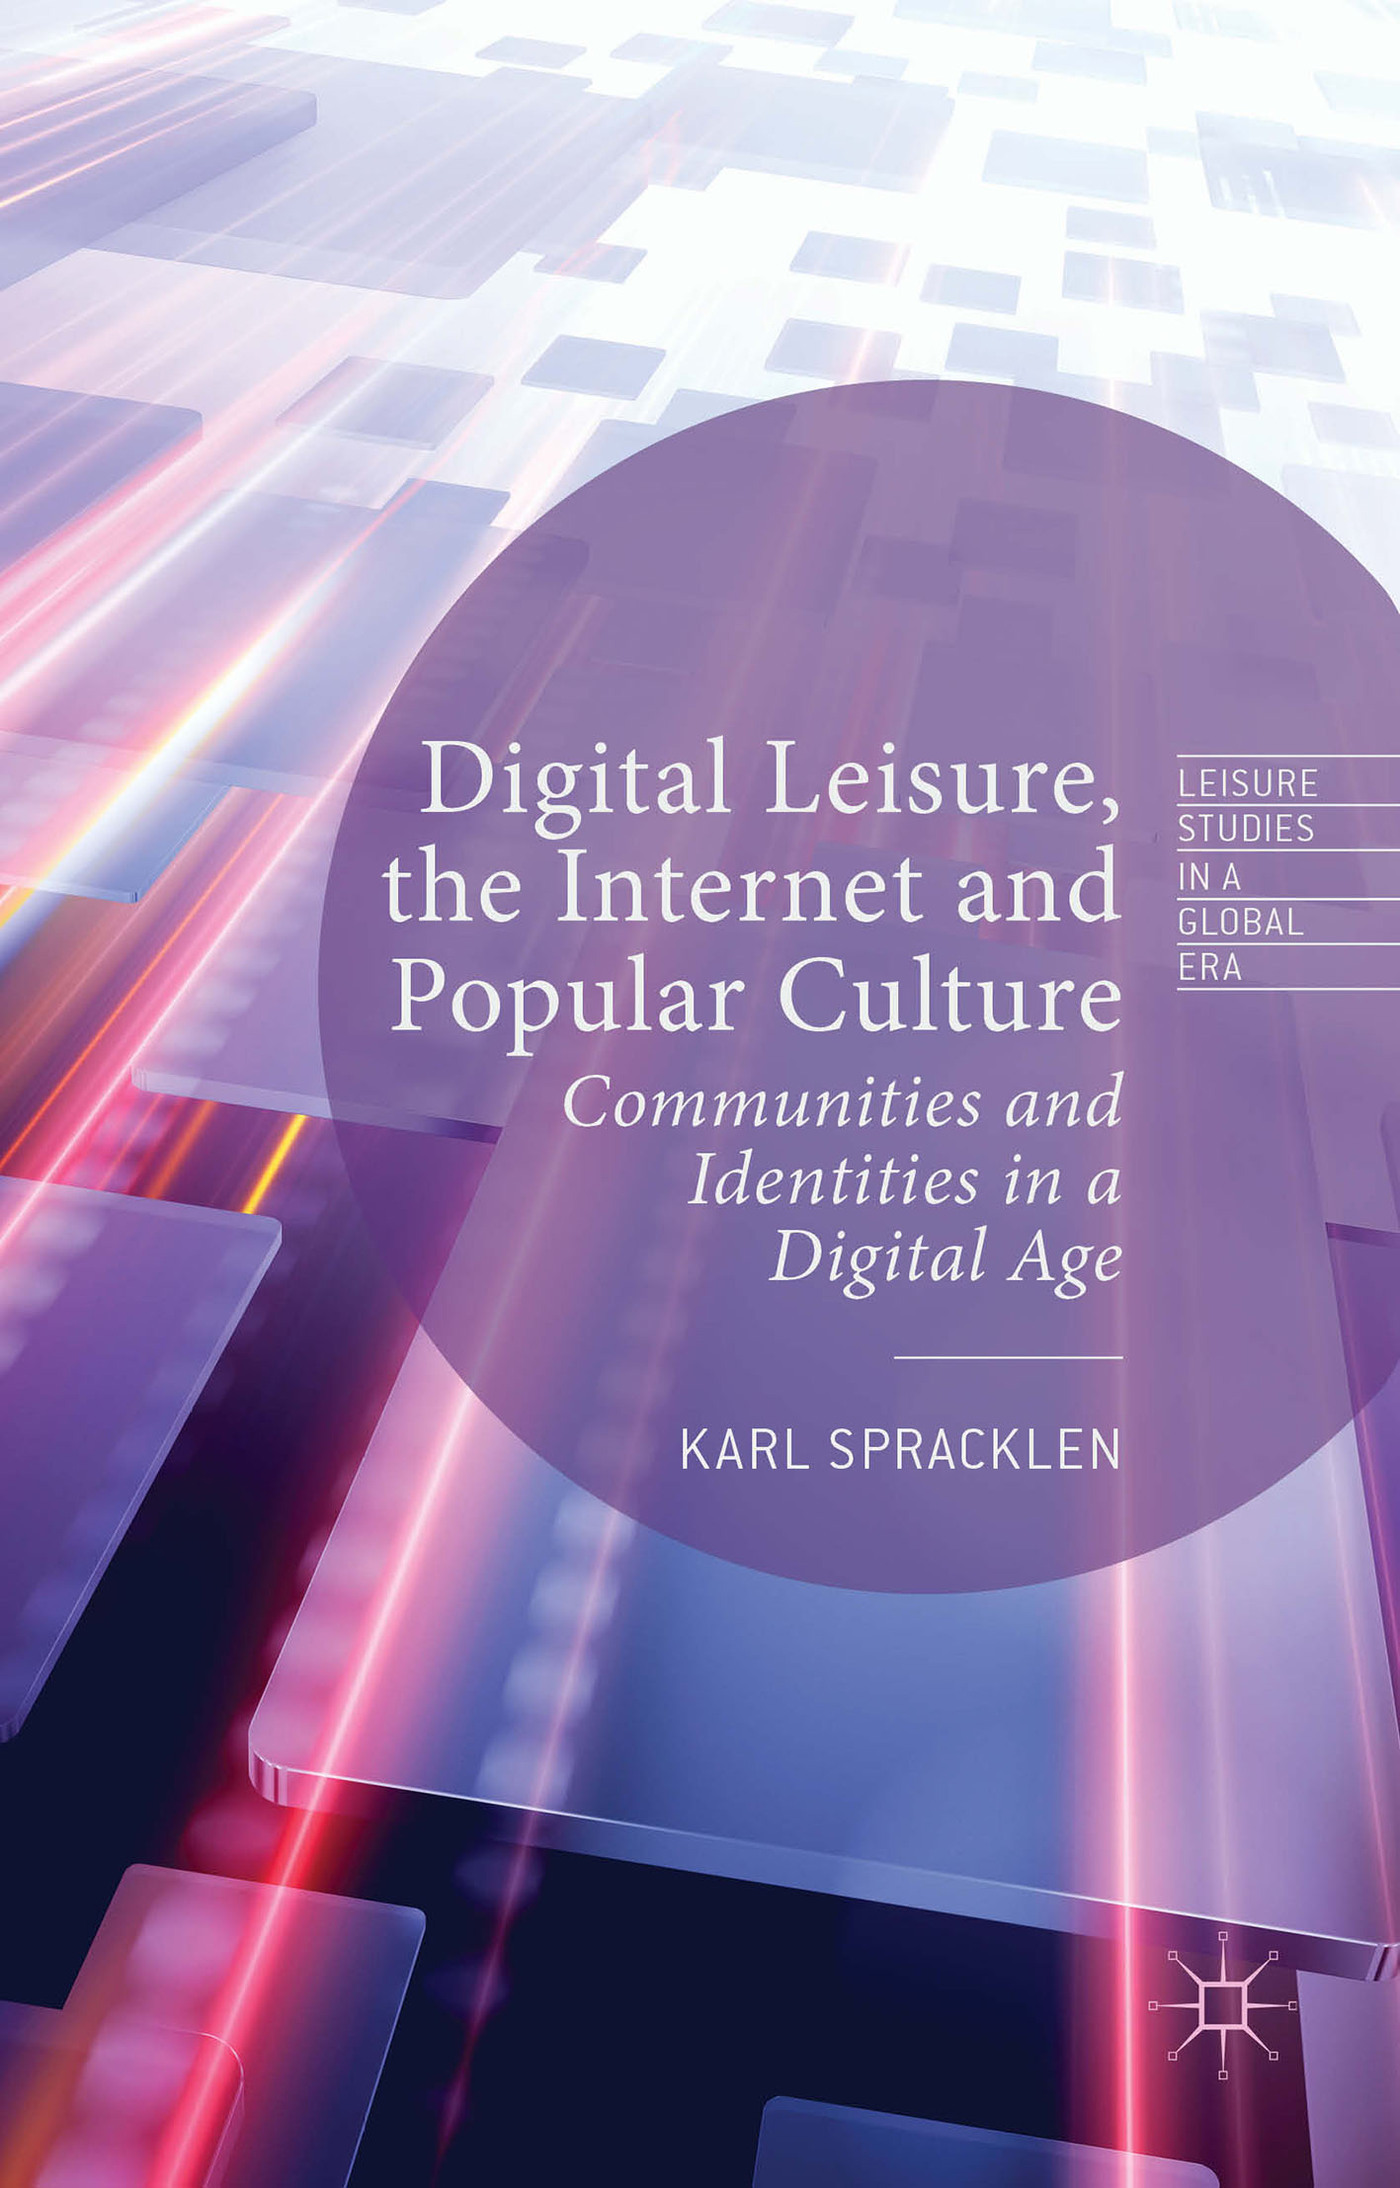 Digital Leisure, the Internet and Popular Culture: Communities and Identities in a Digital Age  by  Karl Spracklen